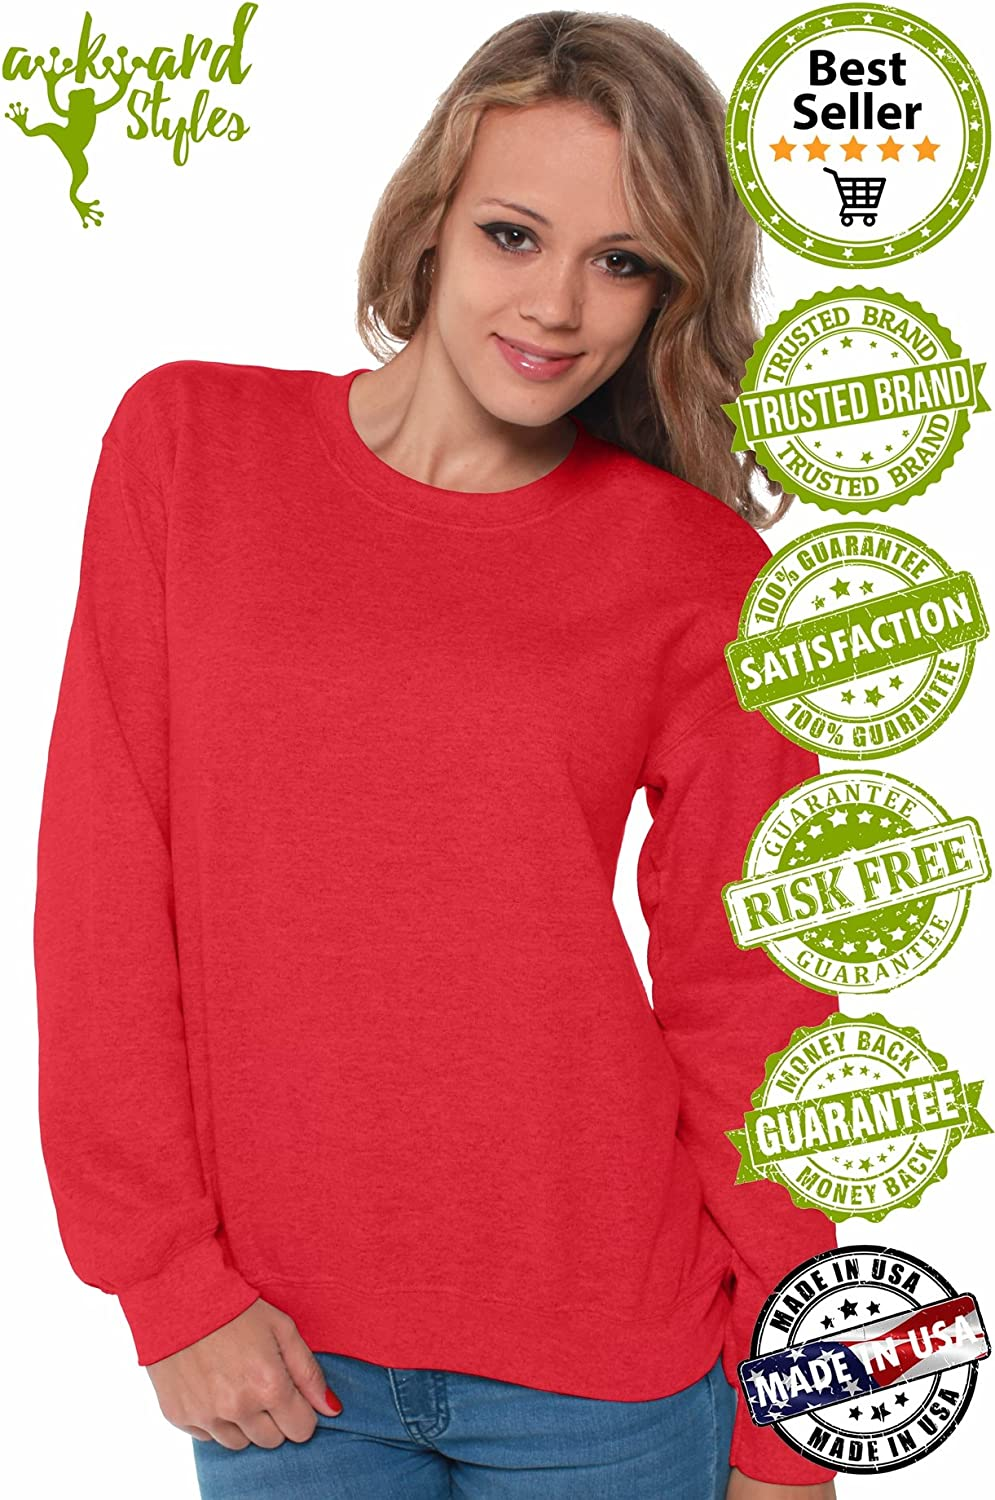 Awkward Styles Autism Sweatshirt for Grandma Autism Awareness Sweater for Support 71RxiU2QKnL